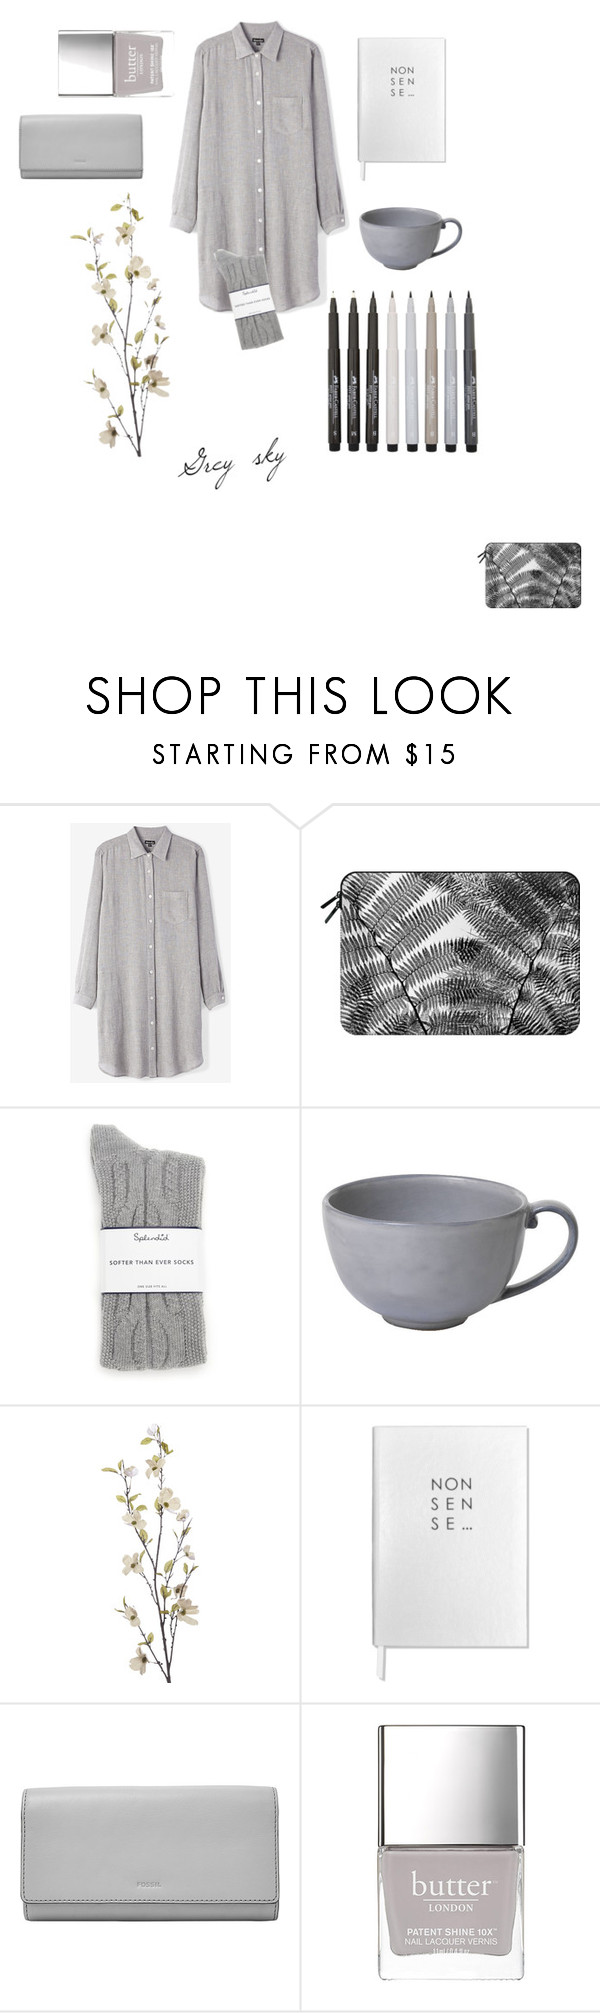 """Monochrome"" by sosofo ❤ liked on Polyvore featuring Steven Alan, Casetify, Faber-Castell, Splendid, Juliska, Pier 1 Imports, Sloane Stationery, FOSSIL, Butter London and comfy"